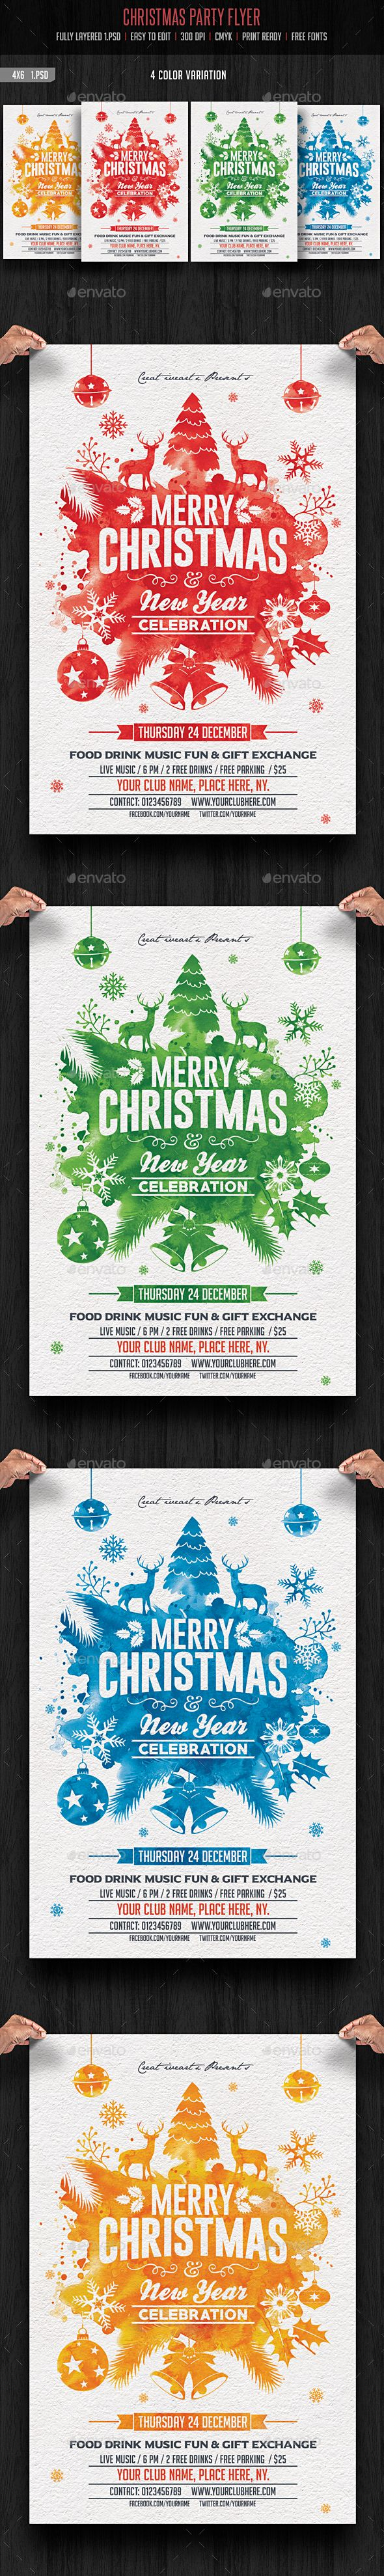 Merry Christmas Party Flyer Template PSD #design Download: http://graphicriver.net/item/christmas-party/13630781?ref=ksioks